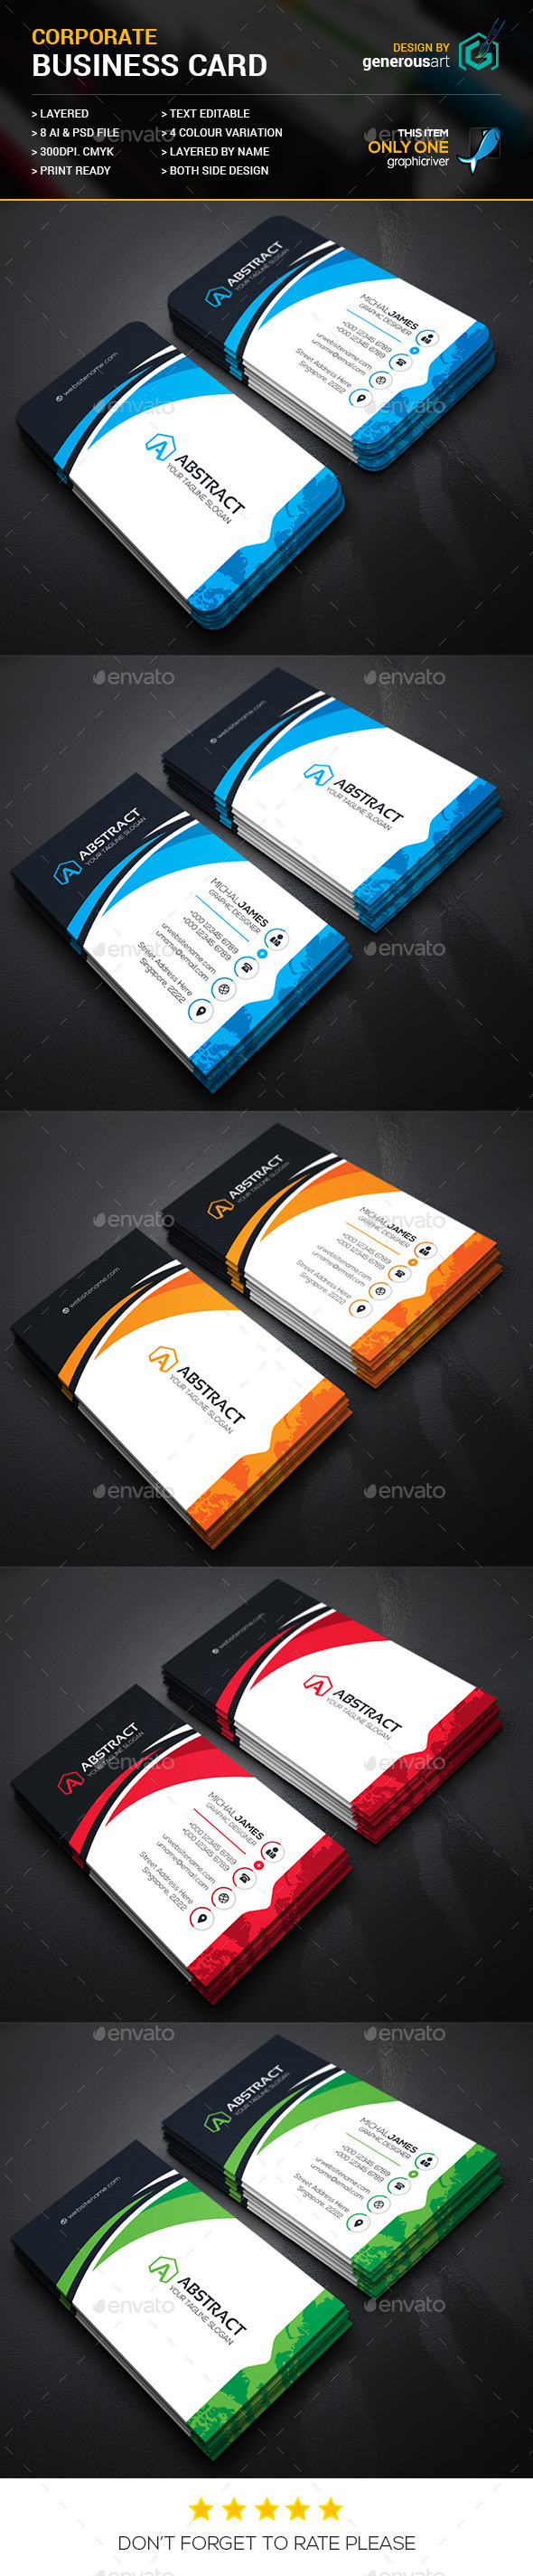 Abstract Corporate Business Cards - Corporate Business Cards